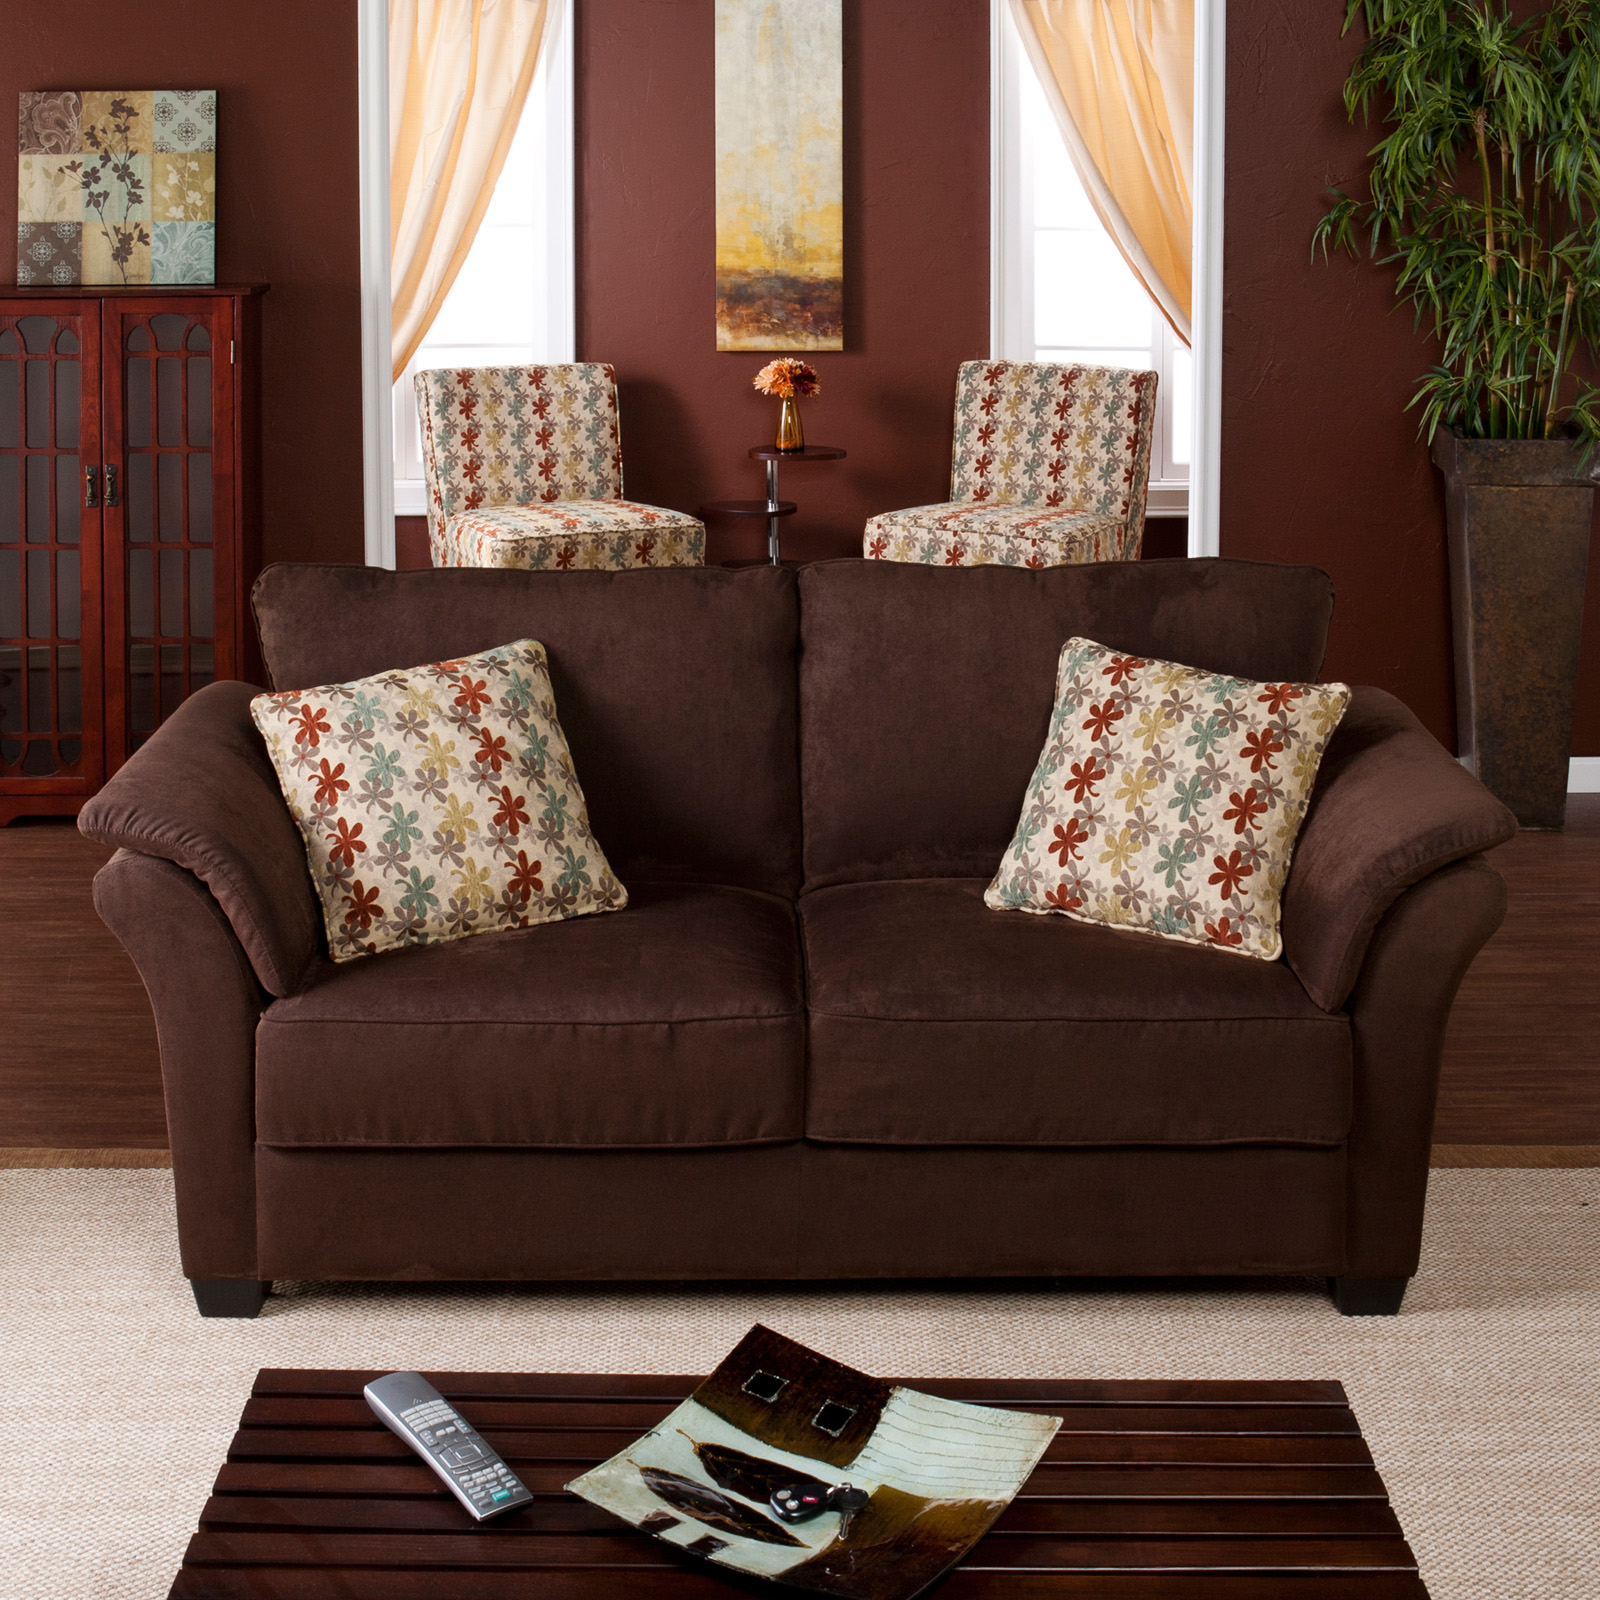 Pillow For Dark Brown Couch